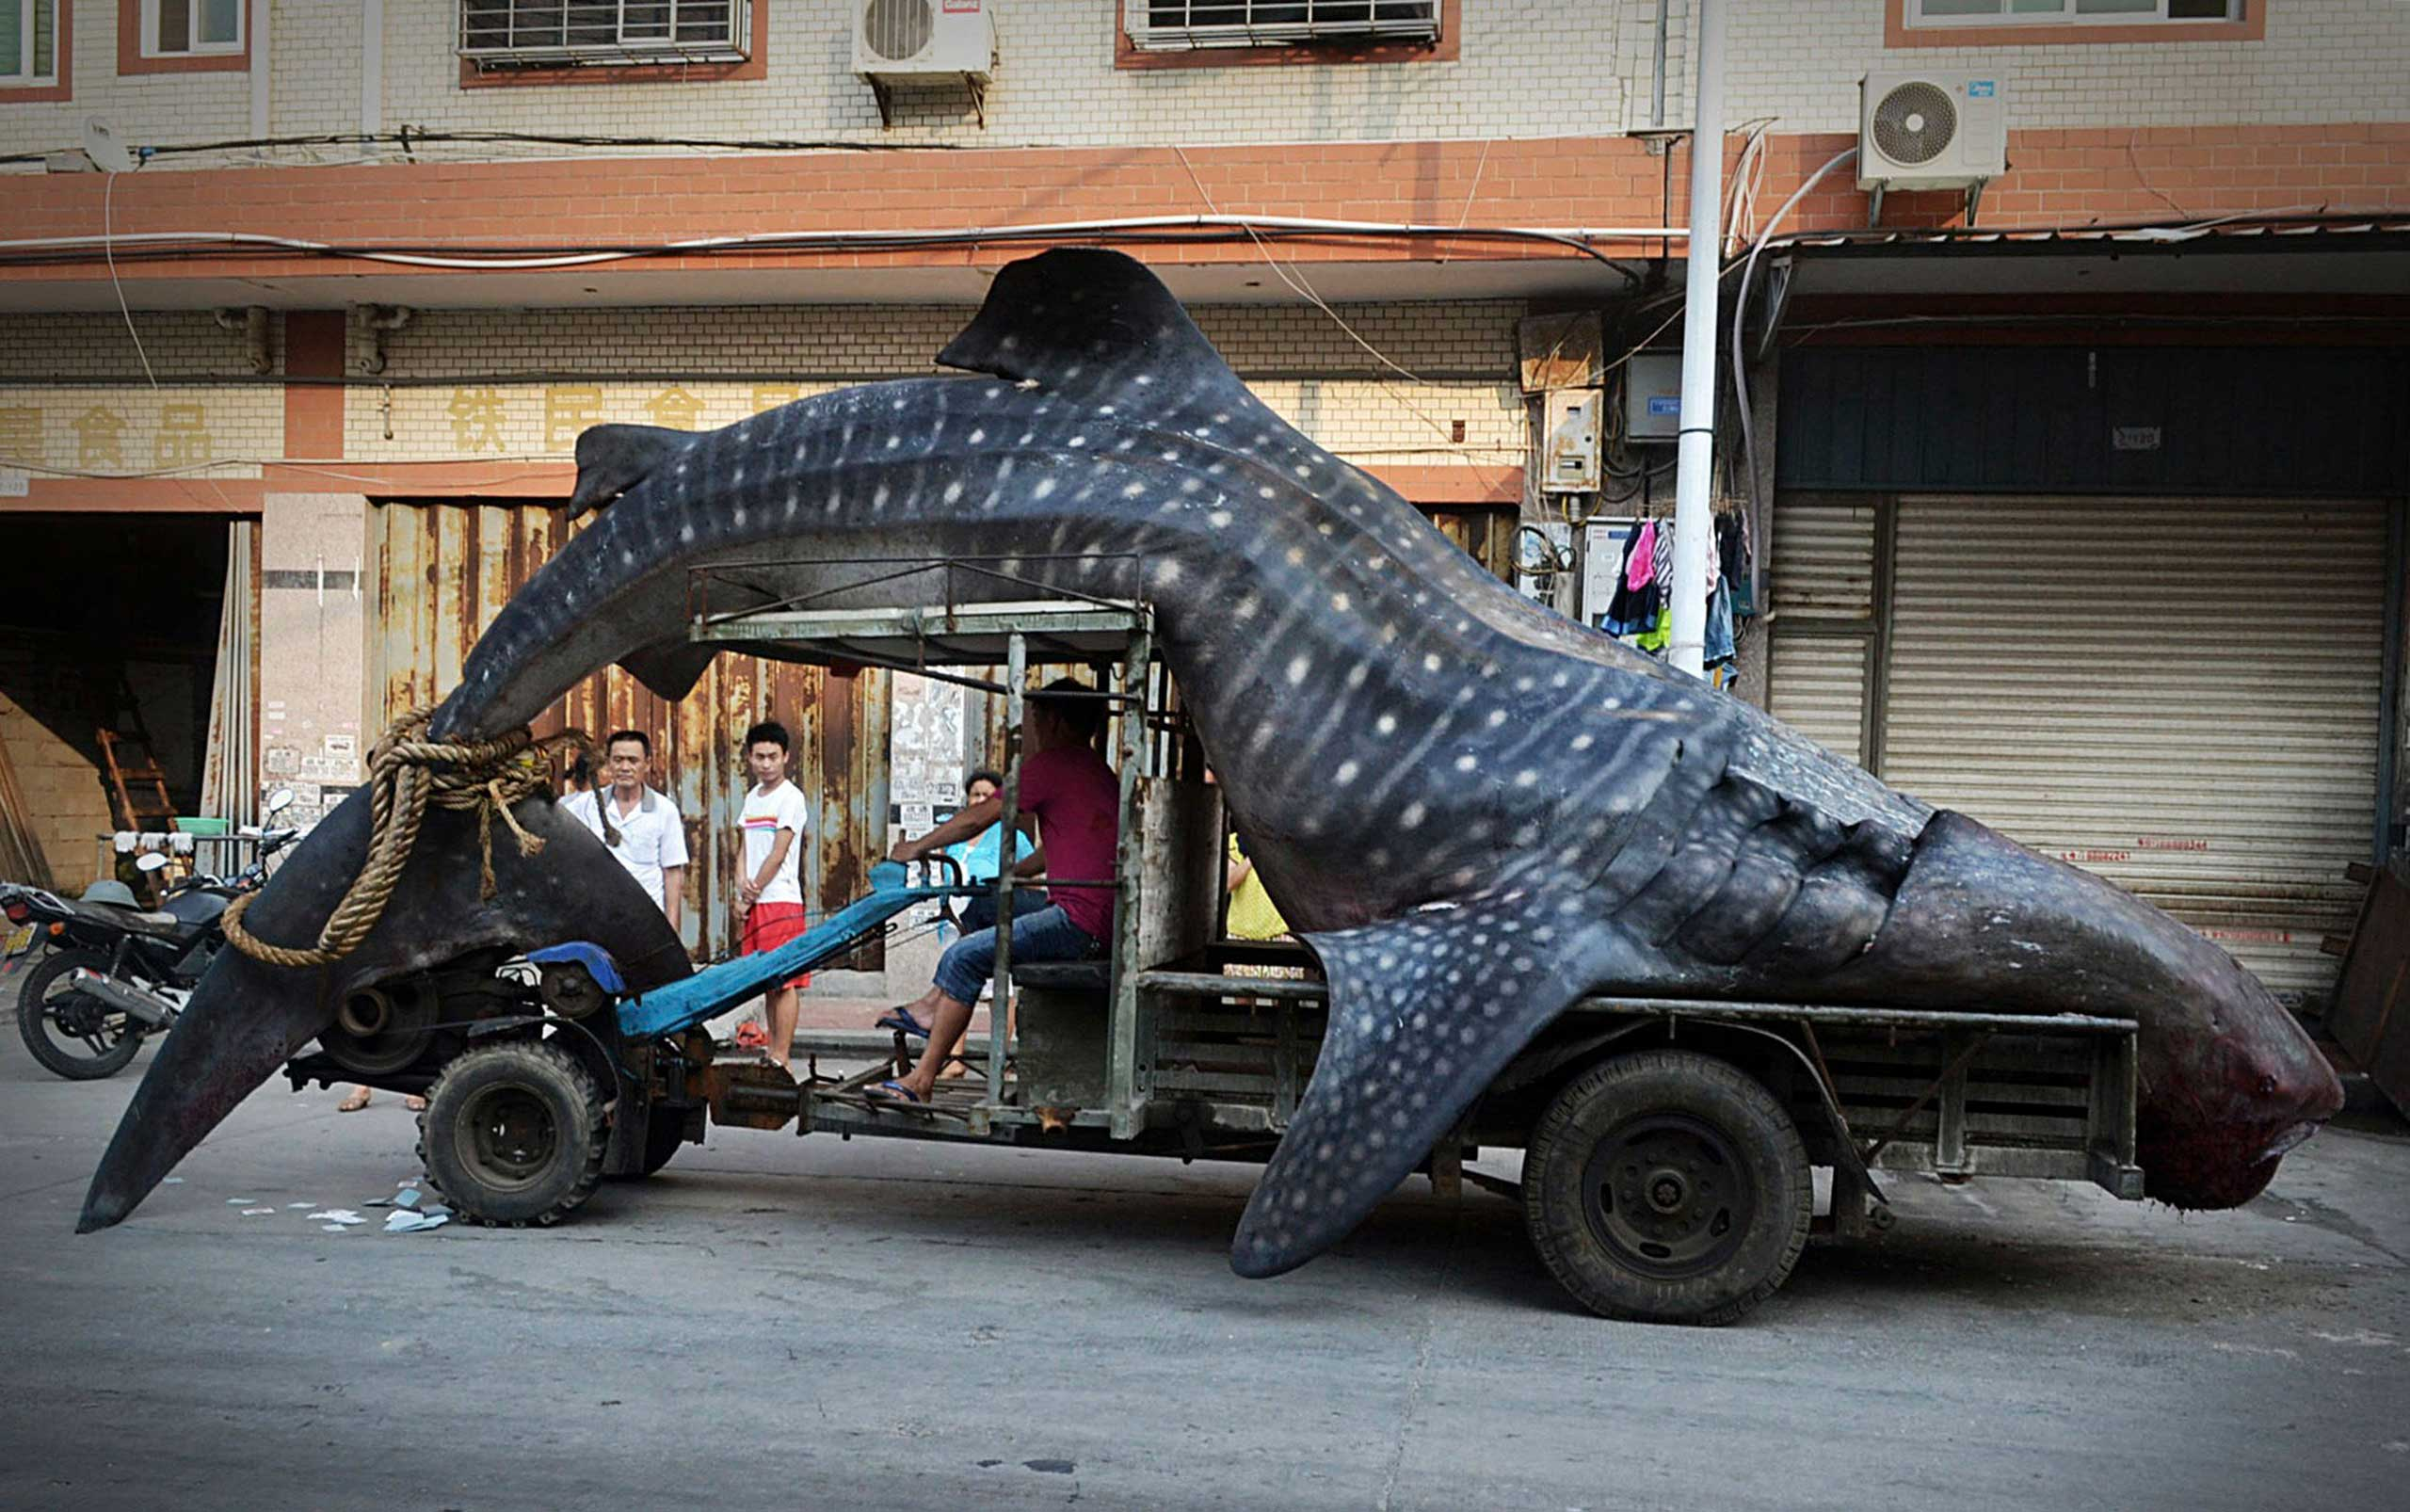 A fisherman transports a dead whale shark after it was caught in fishermen's net, in Yangzhi county, Fujian province Aug. 1, 2014.